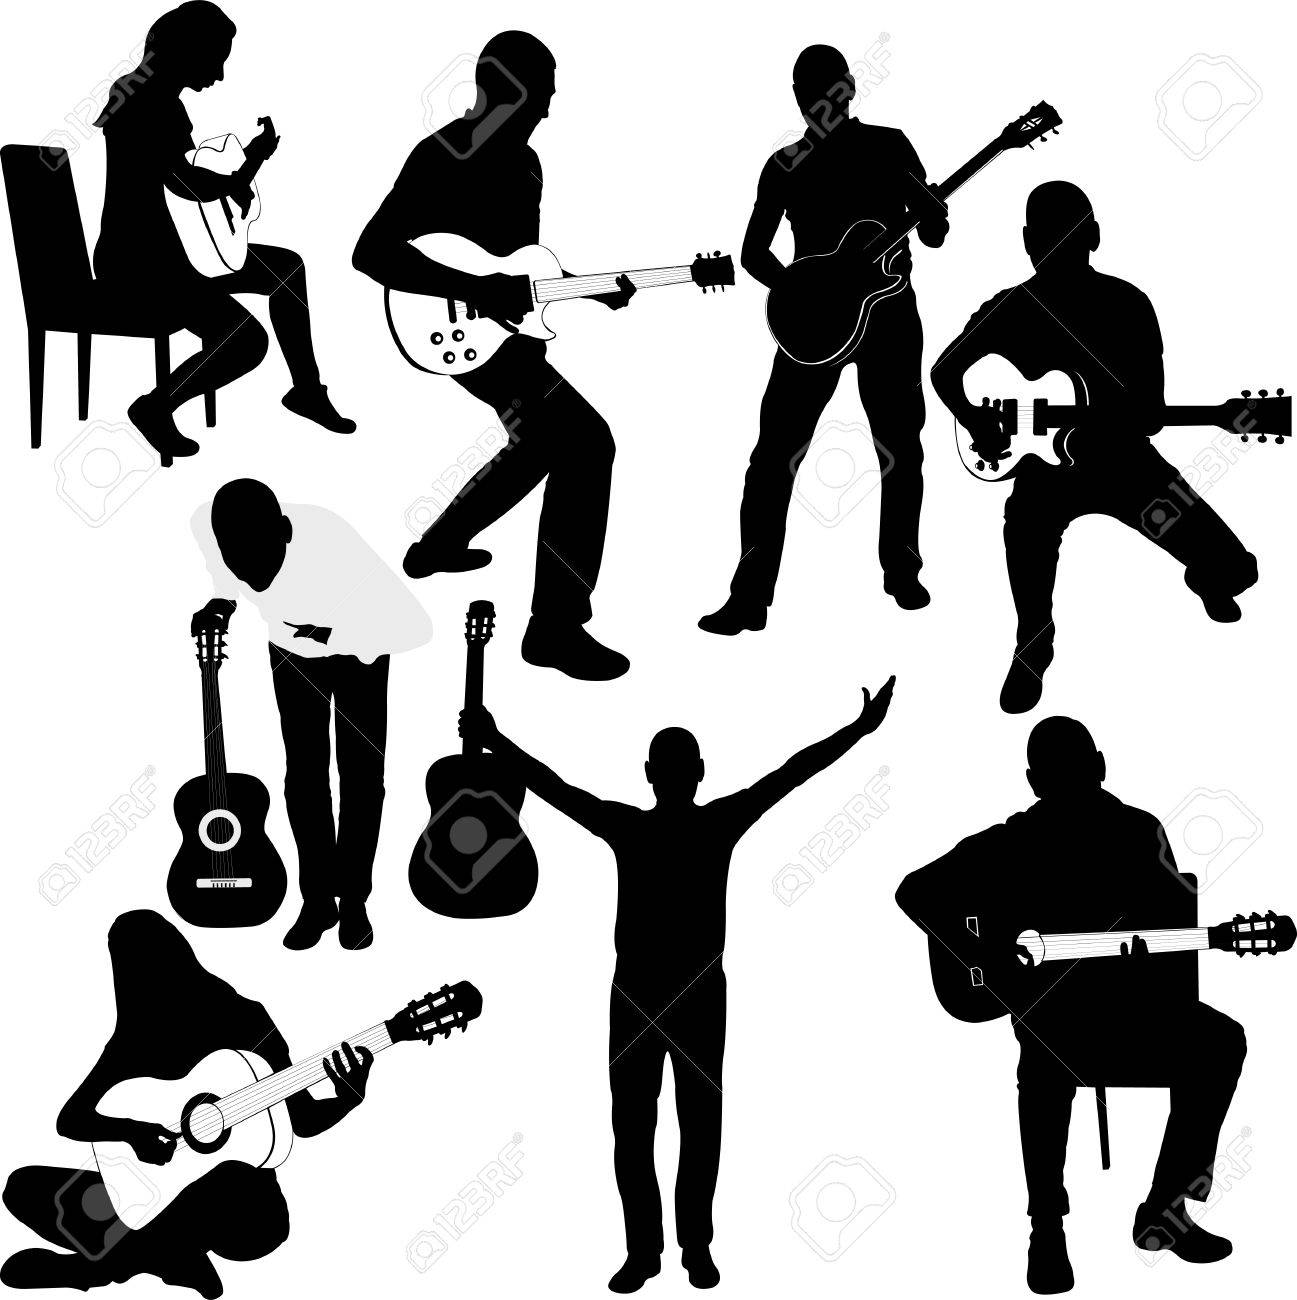 Set of Guitar Player silhouettes. Vector Image - 68998567